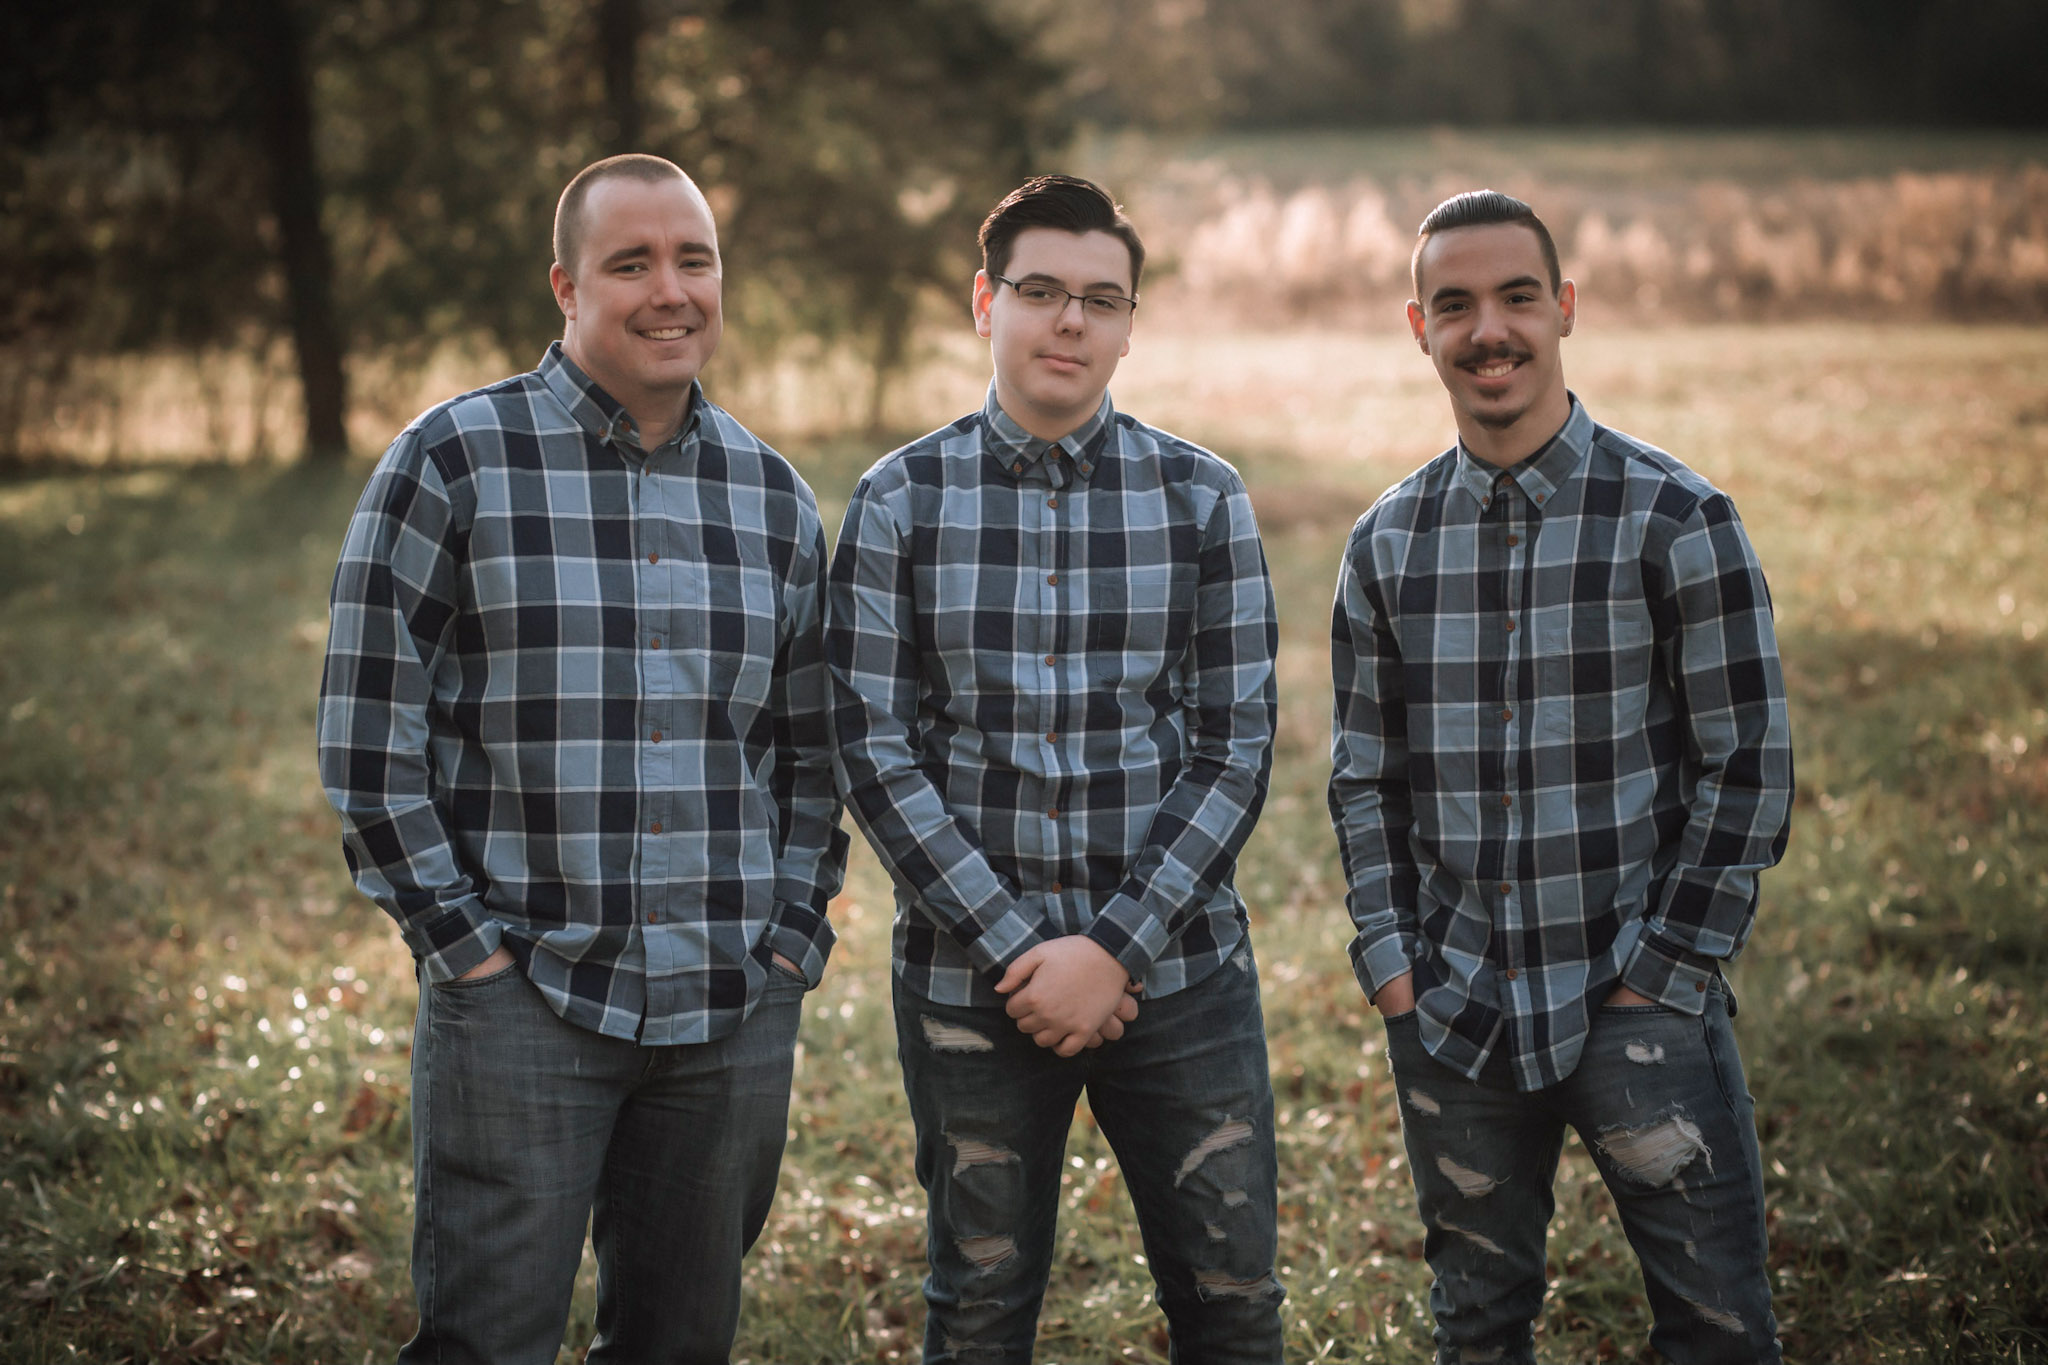 winter-family-2-fisher-farm-park-charlotte-nc-sublime collections photography.jpg